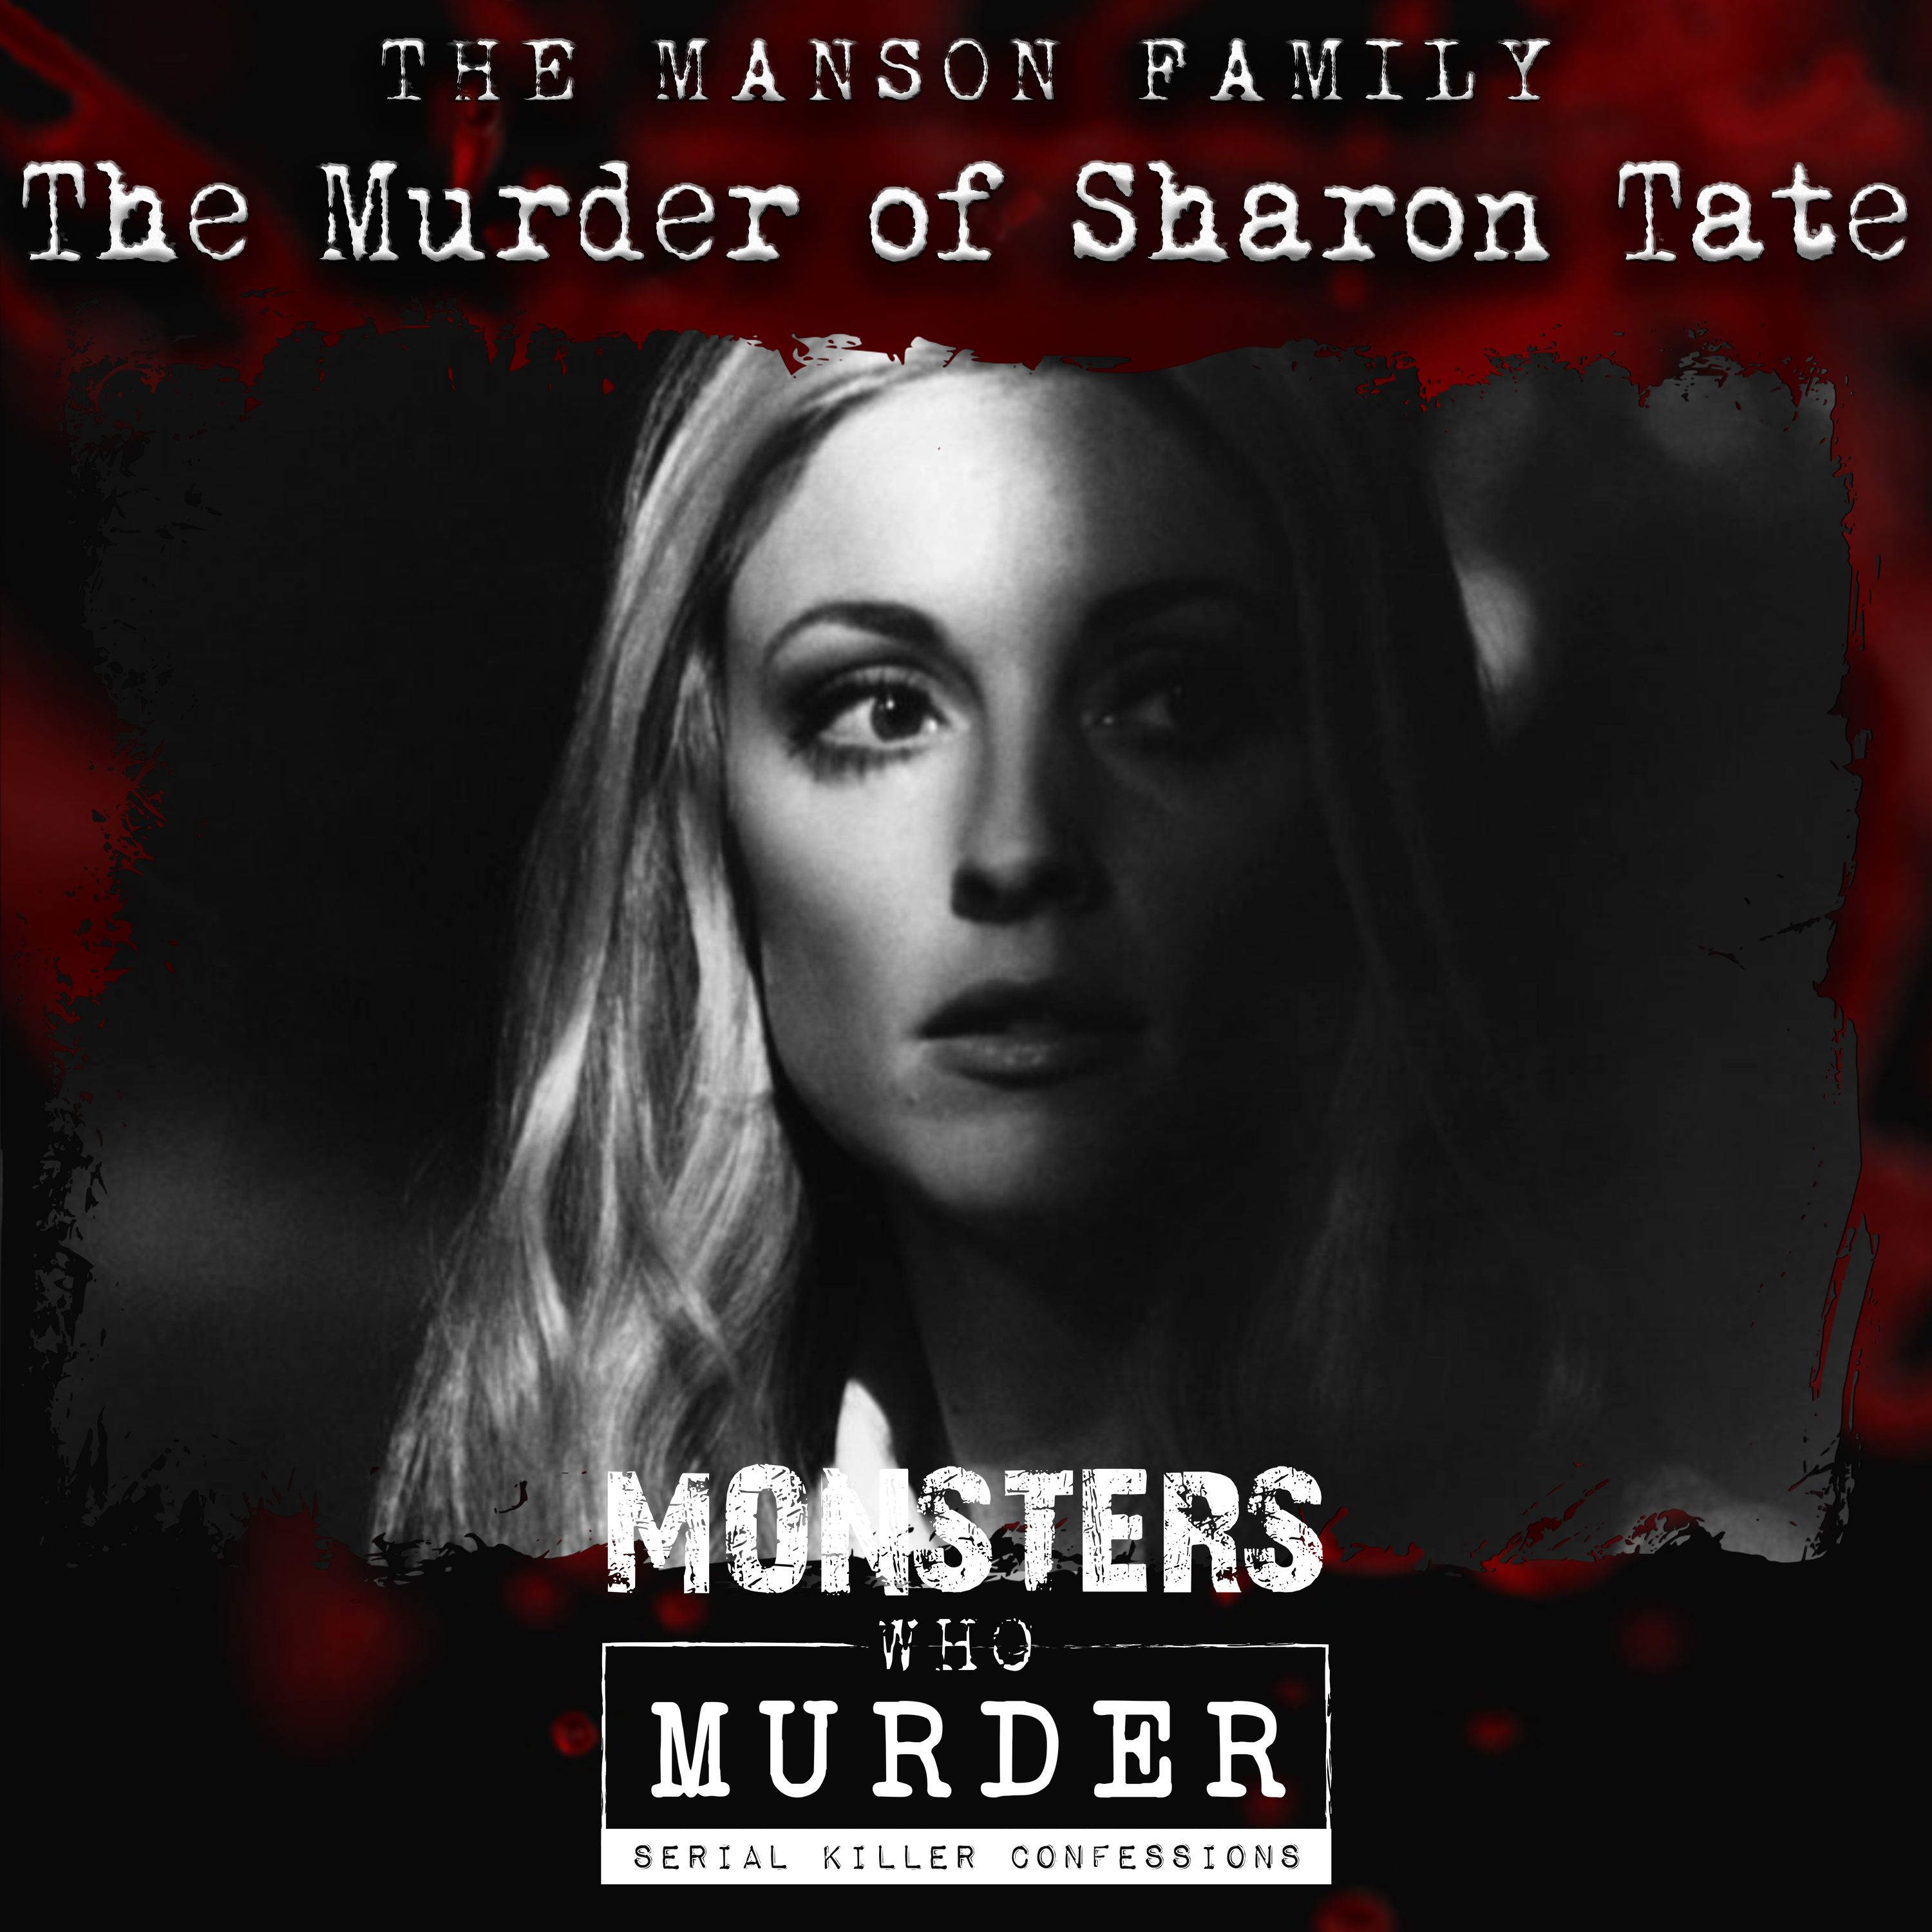 S03E08 The Manson Family - The Murder of Sharon Tate PLUS Ian Brady (The Moors Murder), Anita Cobby Killer Attacked AND Billy Chemirmir